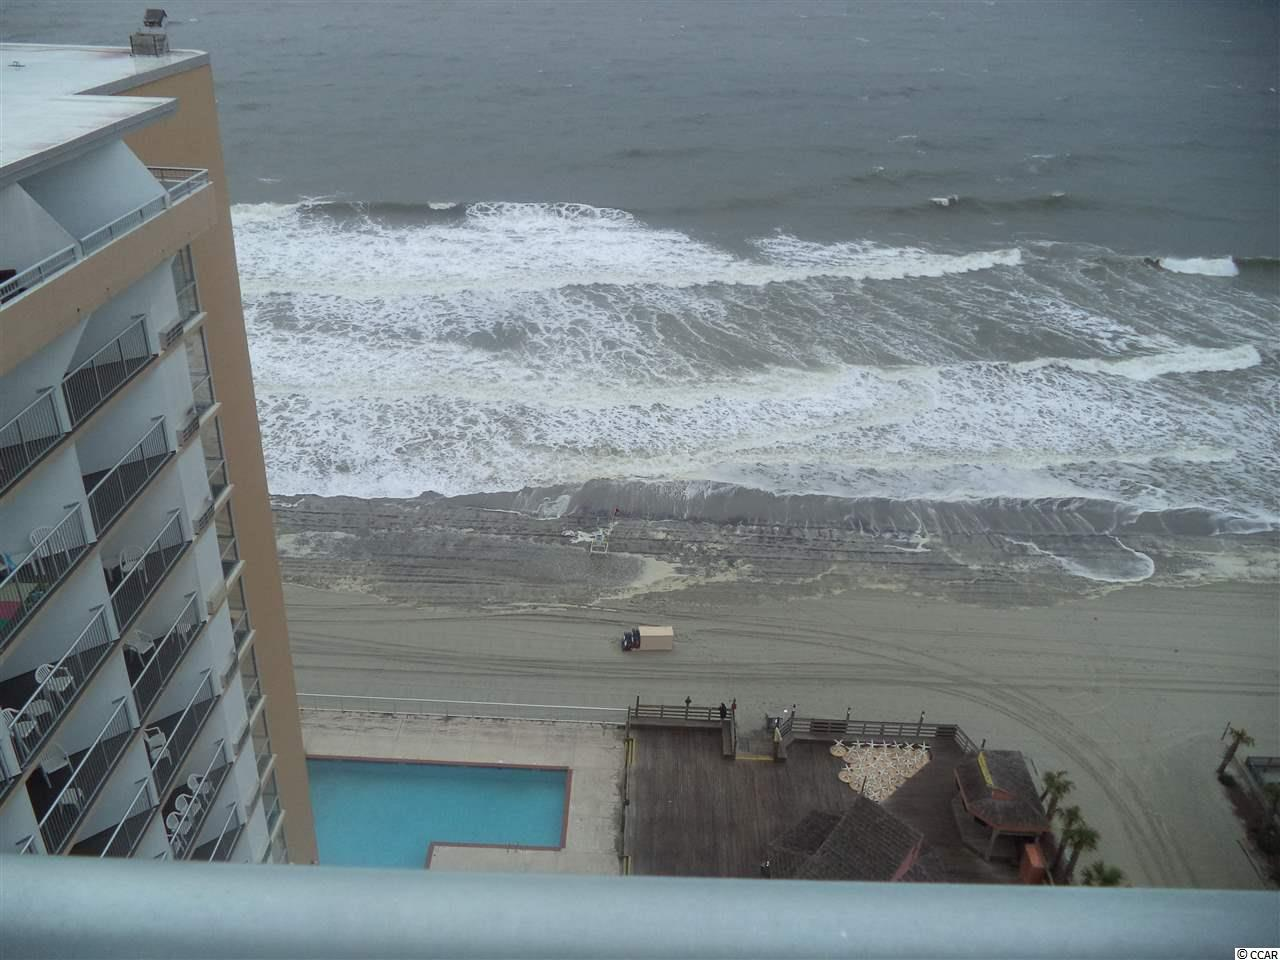 Have you seen this  SANDS OCEAN property for sale in Myrtle Beach